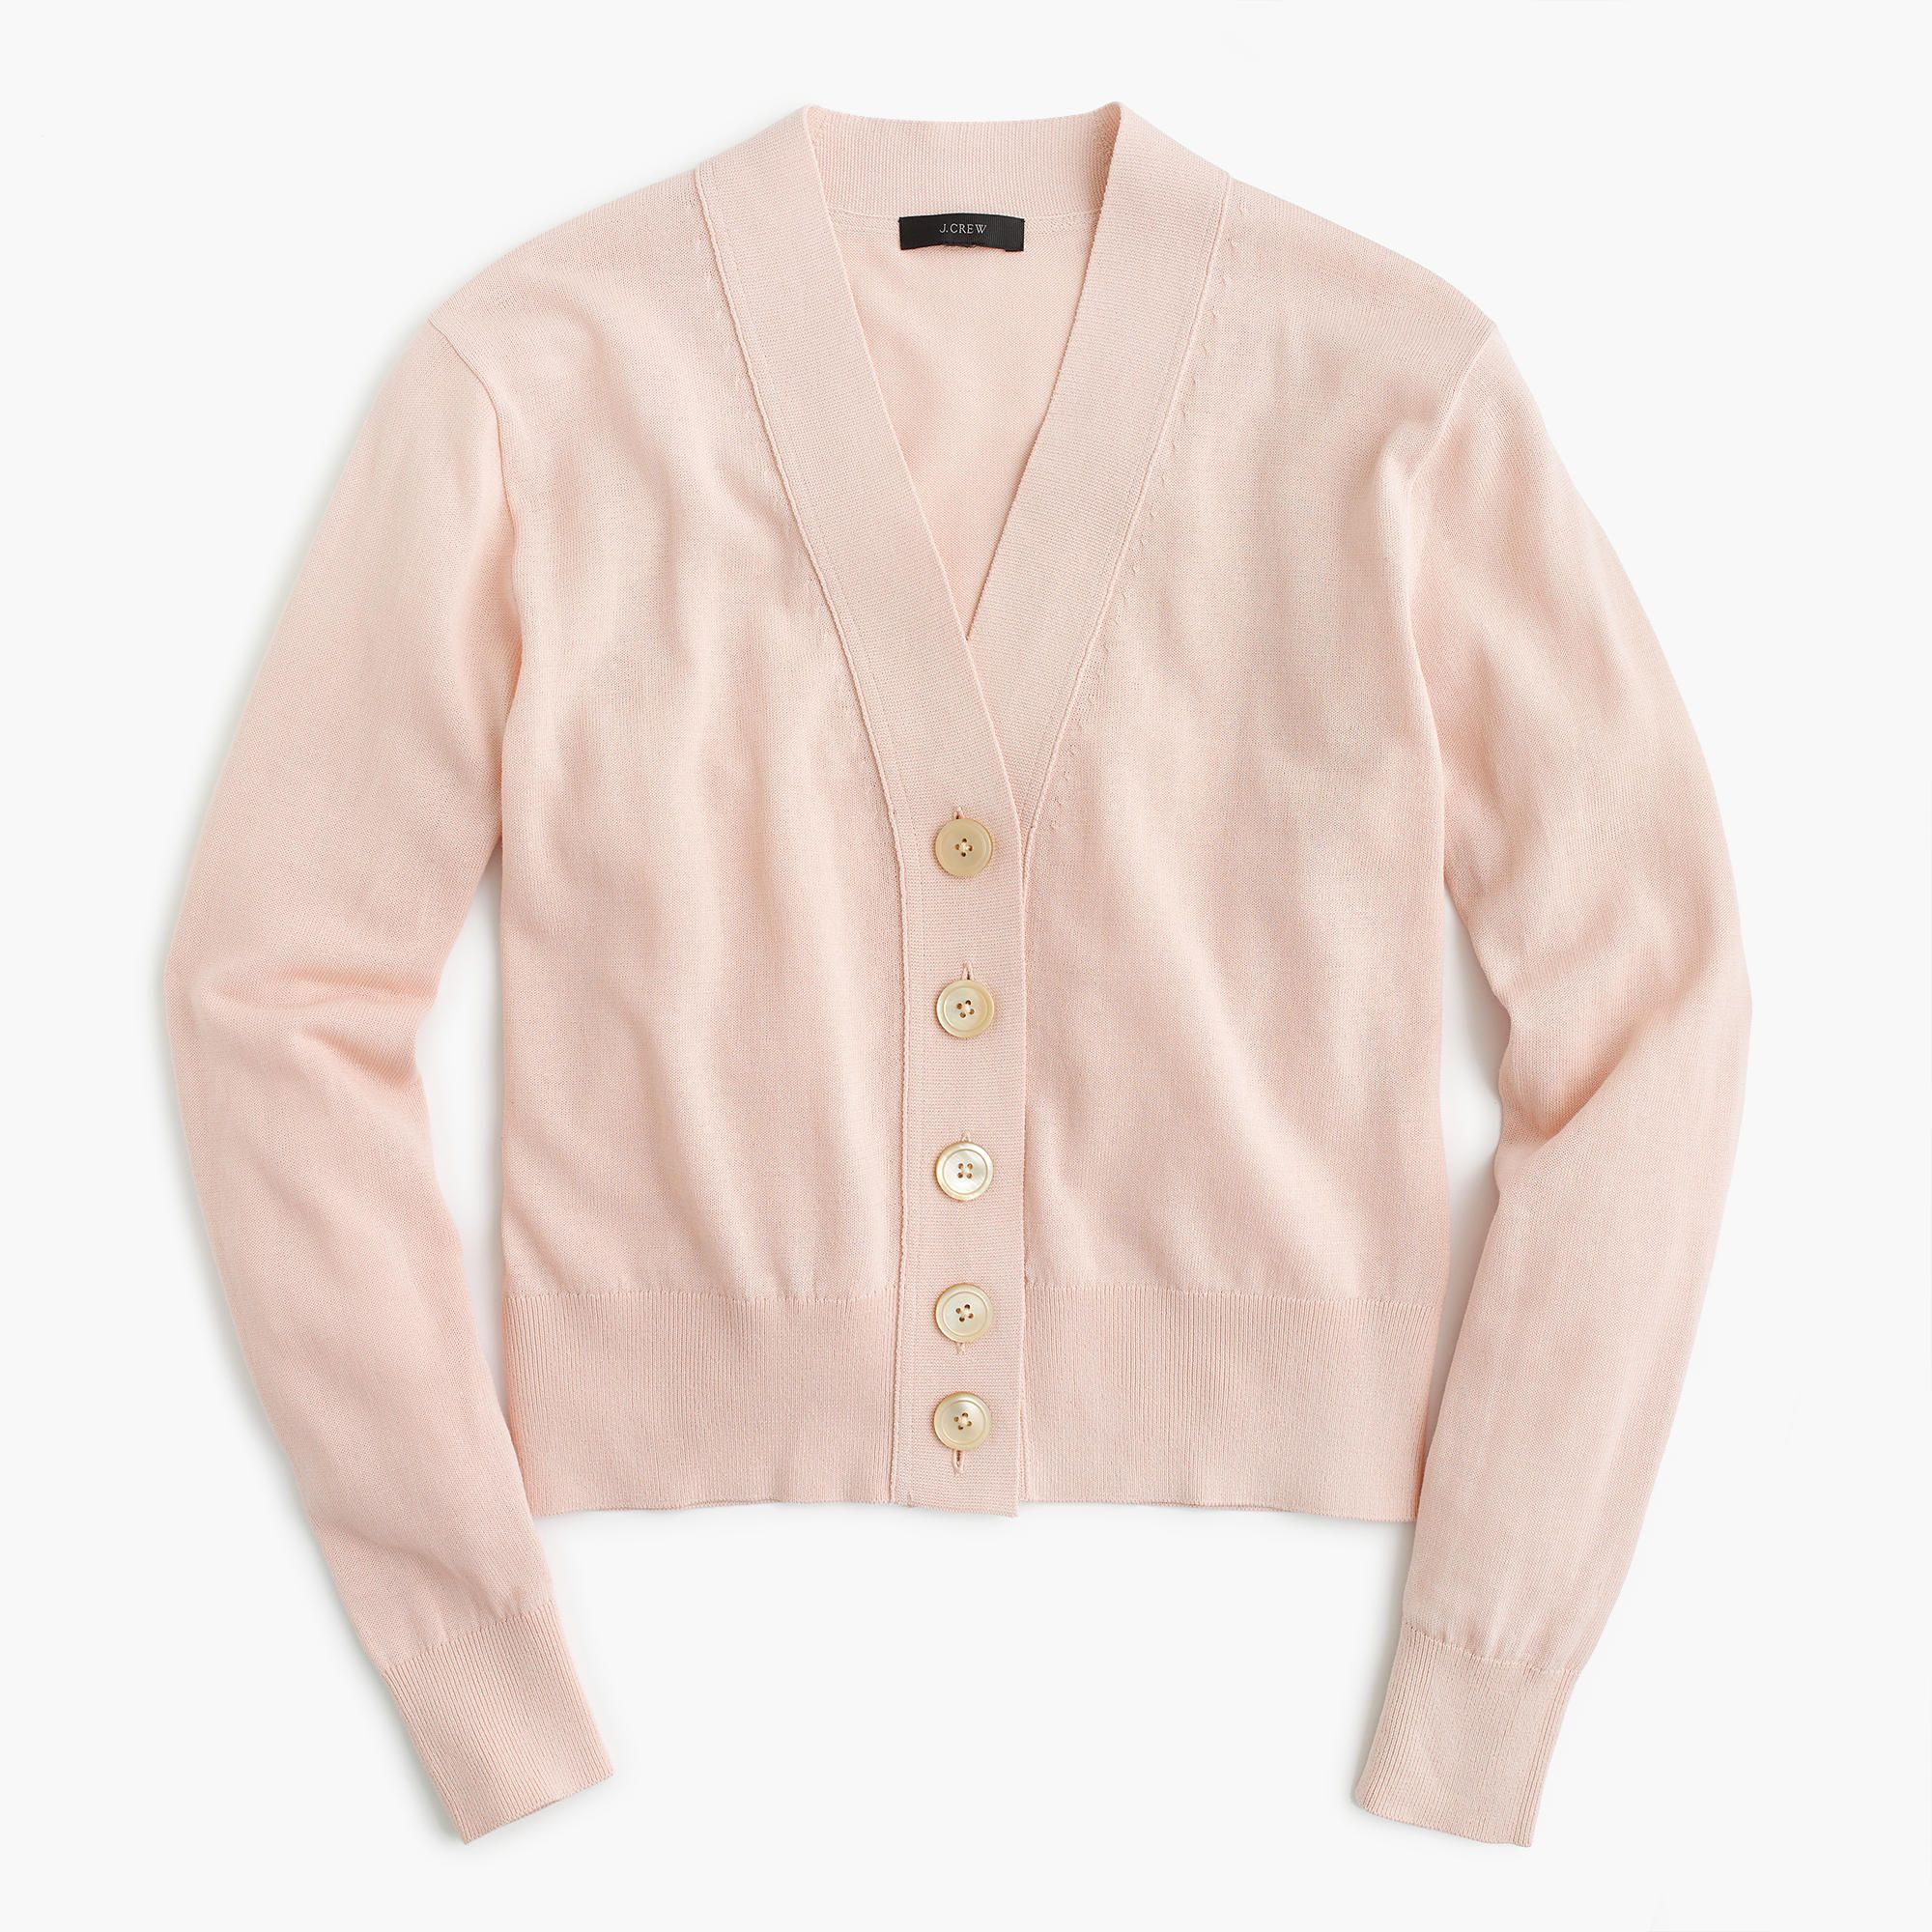 Cropped lightweight cardigan sweater in shell pink | J. Crew ...